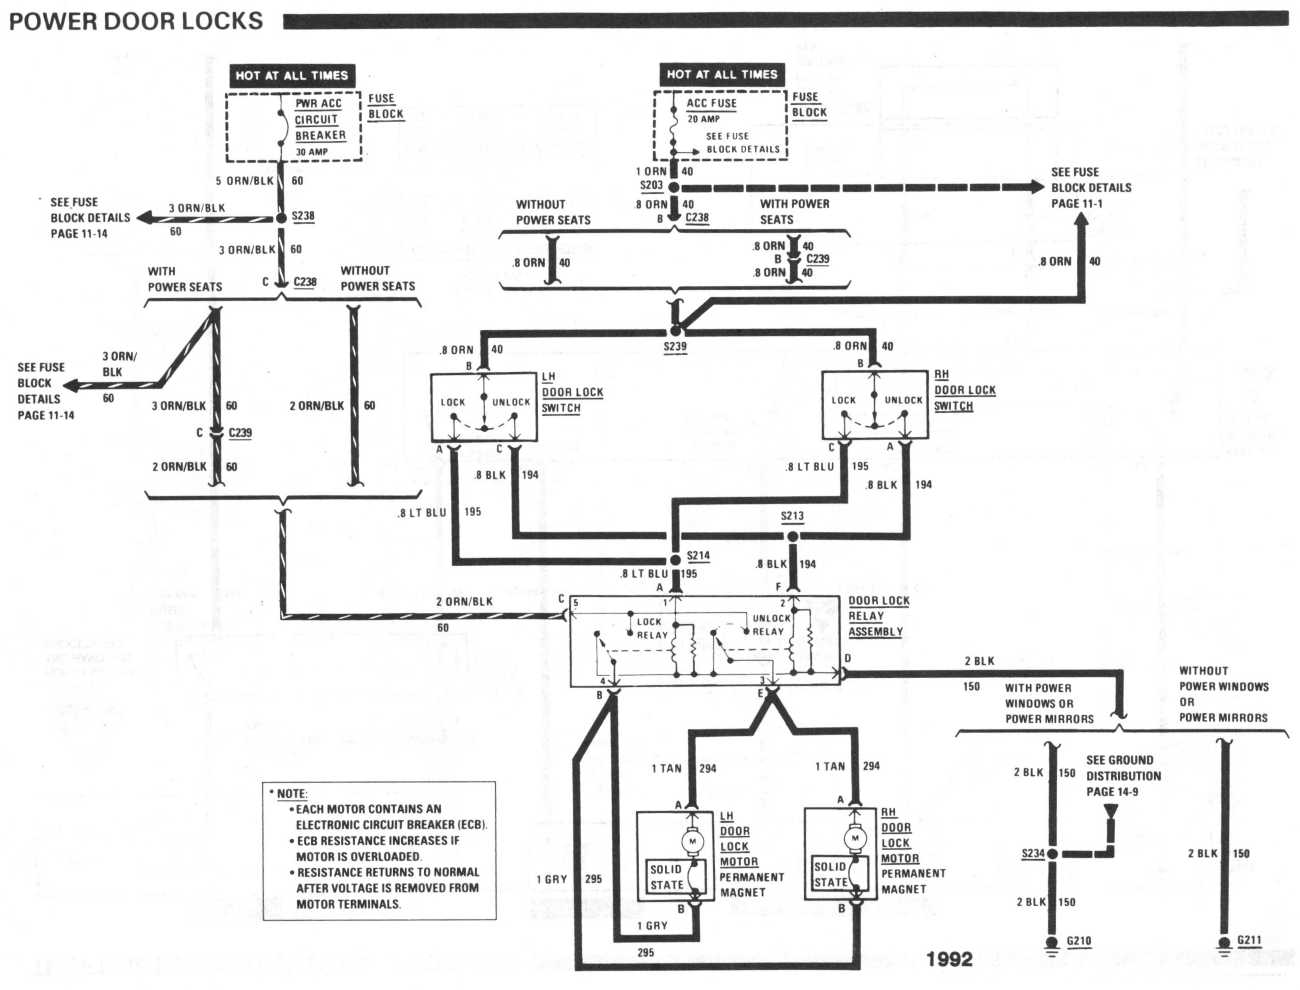 1995 Chevy Astro Power Lock Wiring - 2002 Chevy 3 4l Engine Diagram -  landrovers.2020ok-jiwa.jeanjaures37.fr | Power Locks Wiring Diagram For 1995 Chevy |  | Wiring Diagram Resource